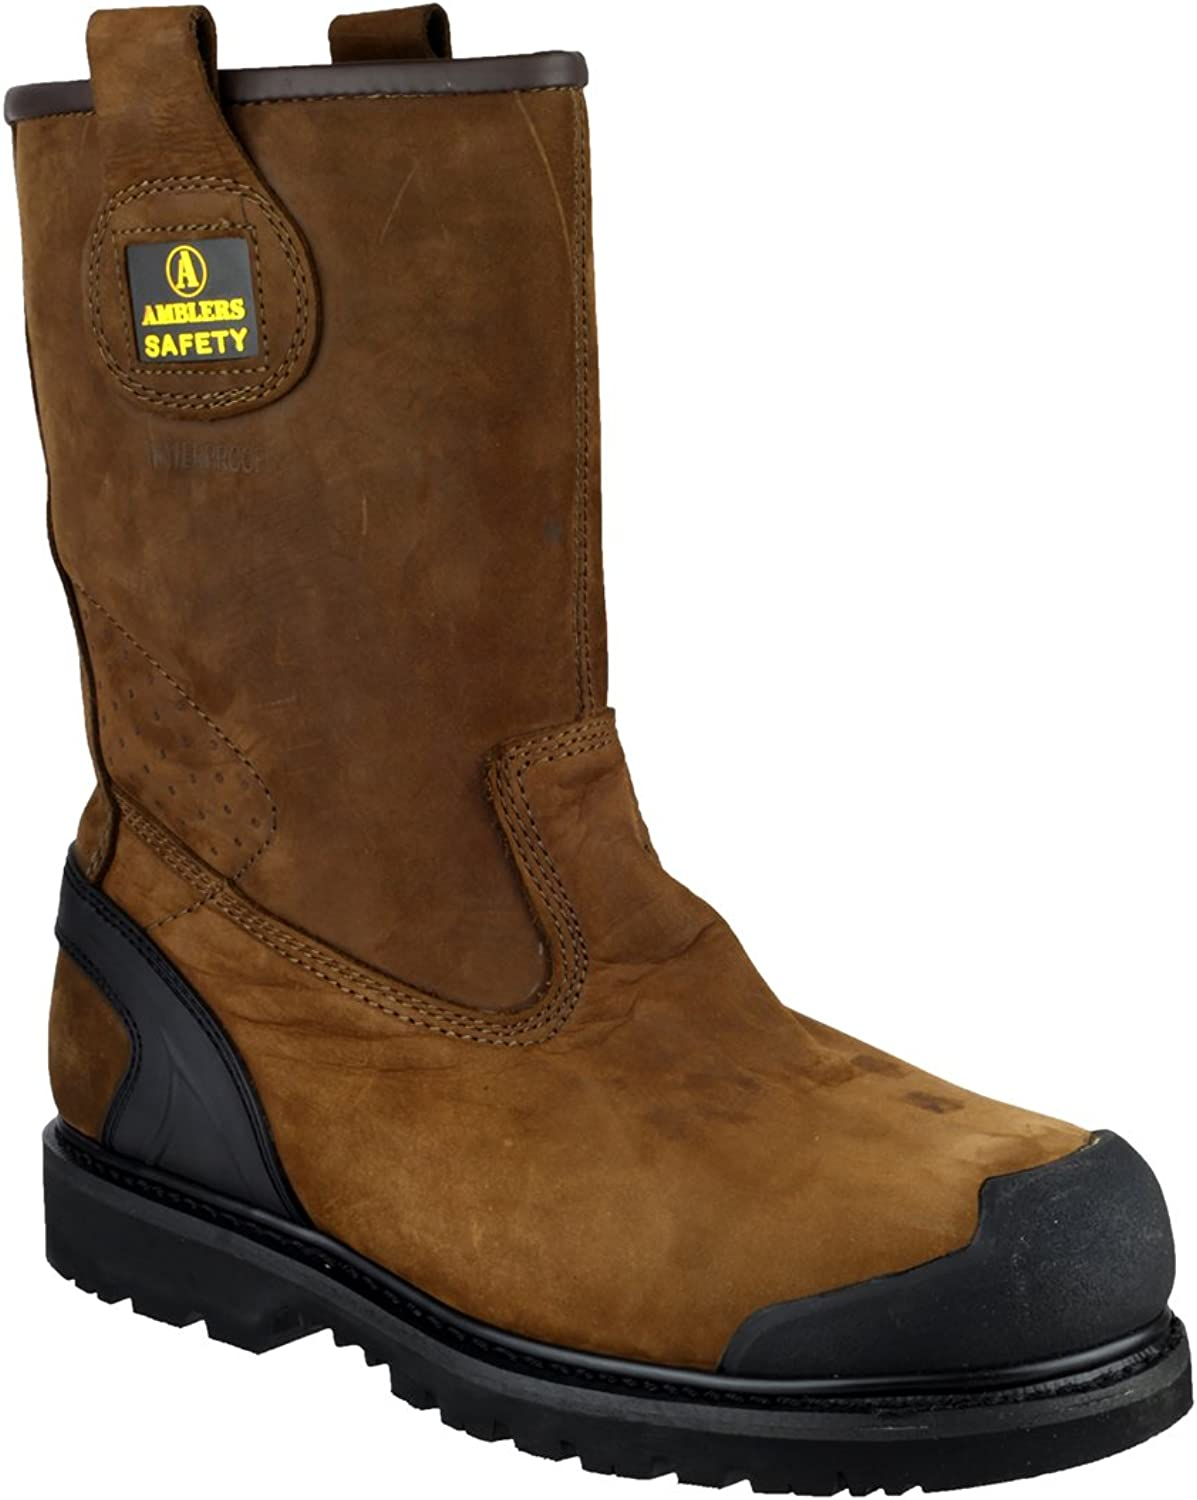 Amblers Safety Mens FS223 Goodyear Welted Waterproof Pull on Industrial Safety Boot Brown Size UK 13 EU 48